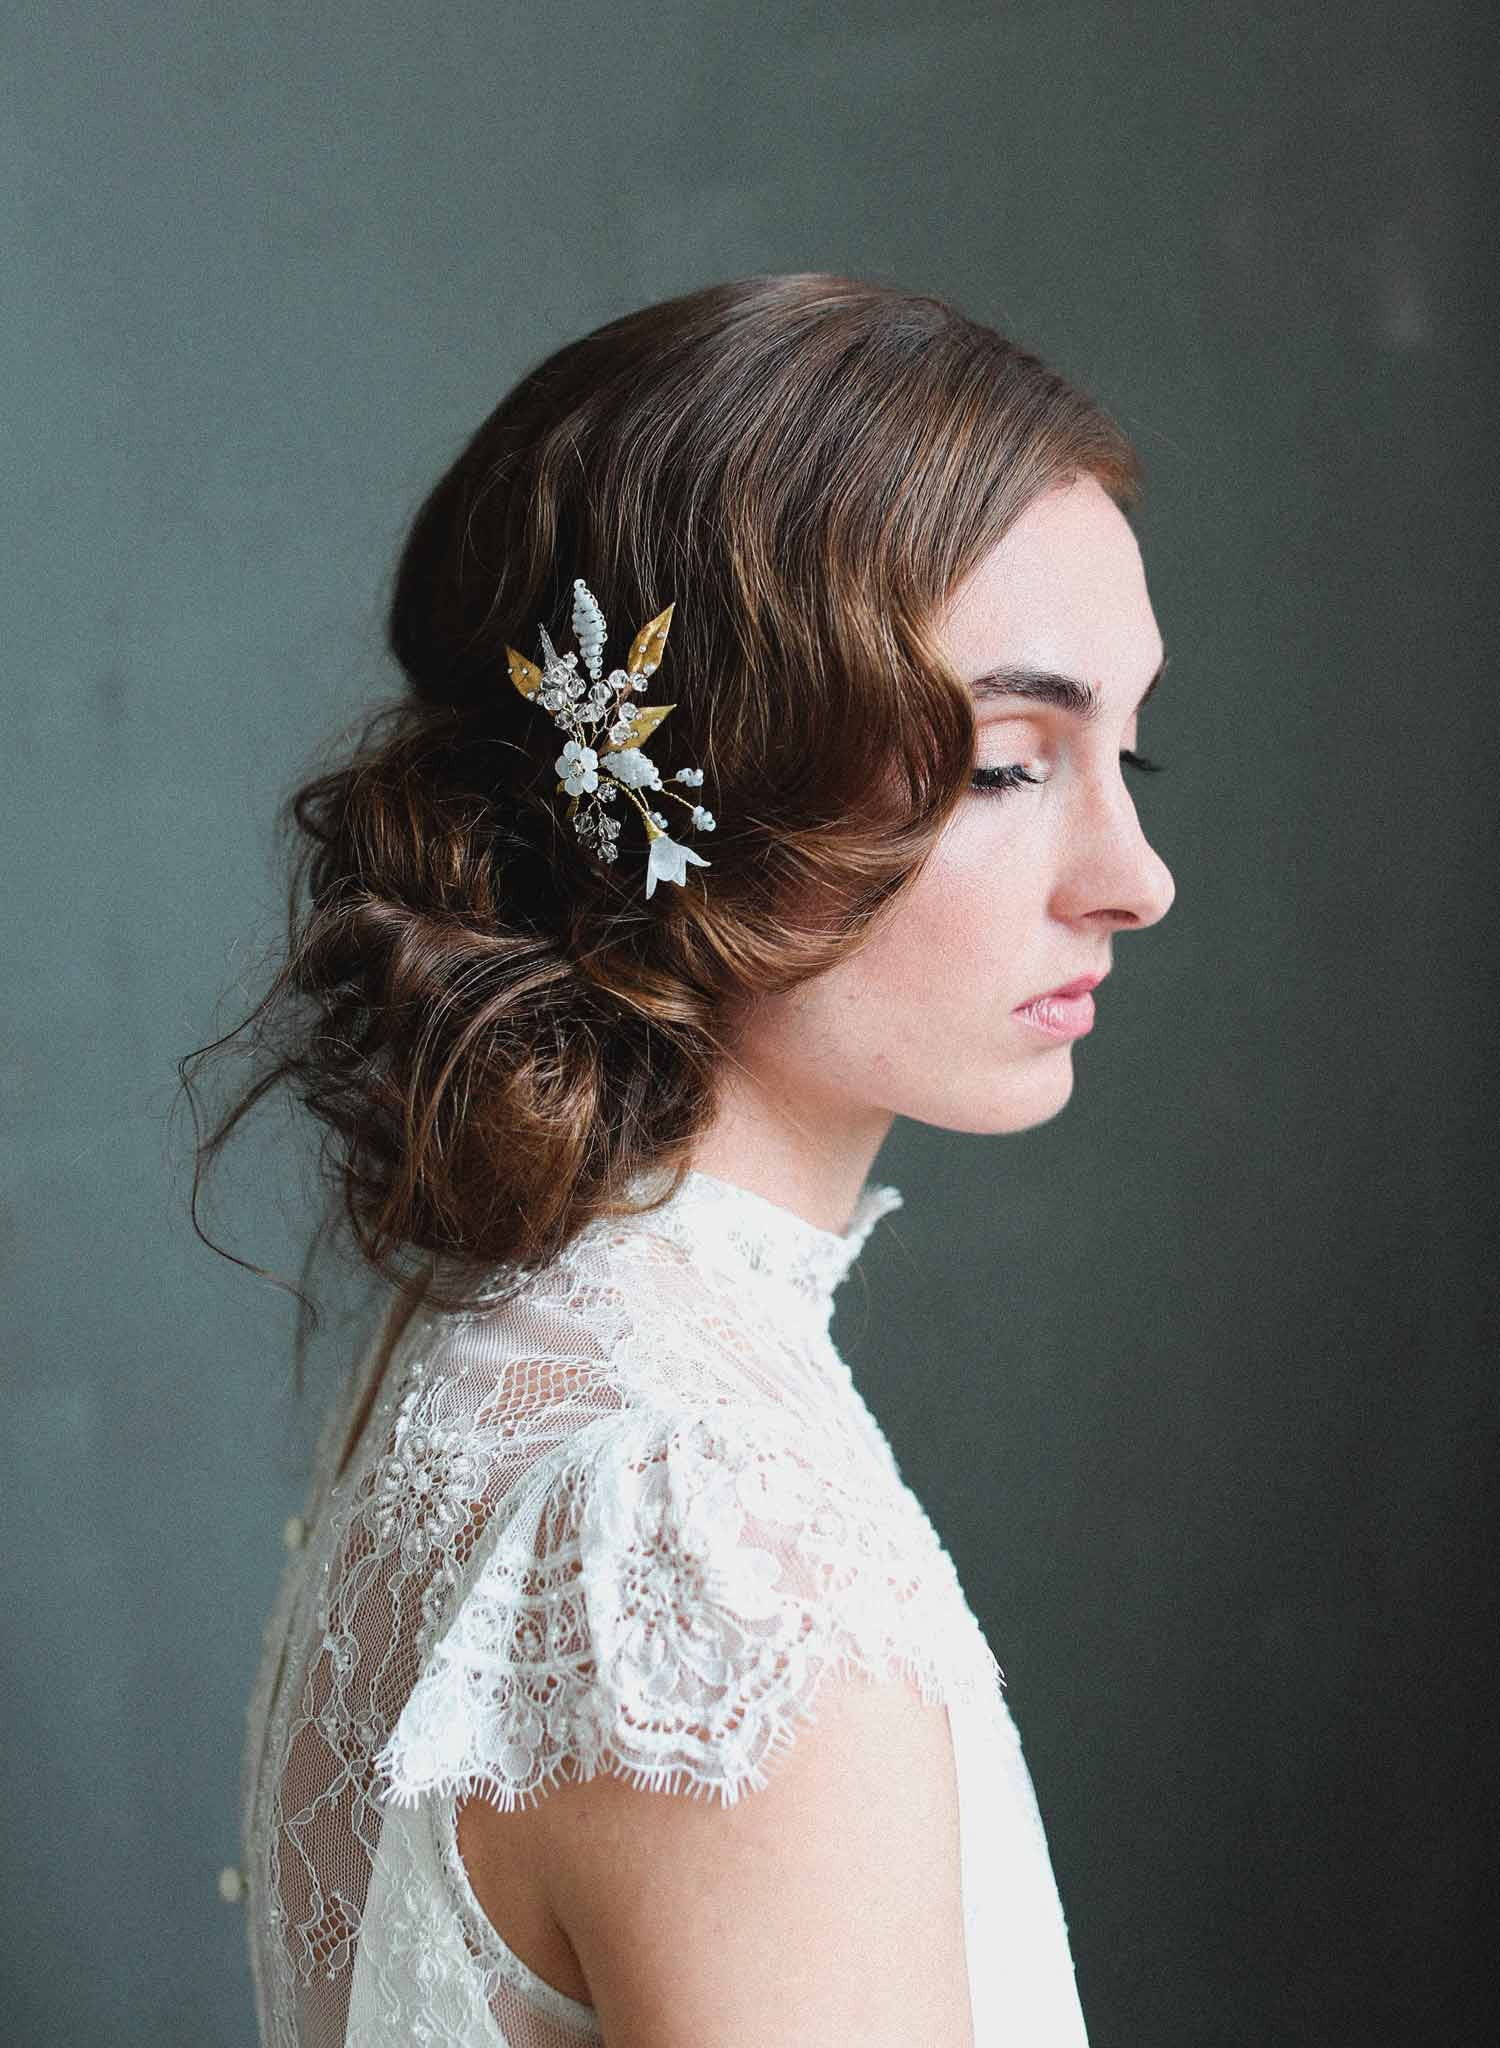 Charming blossom hair pin - Style #715